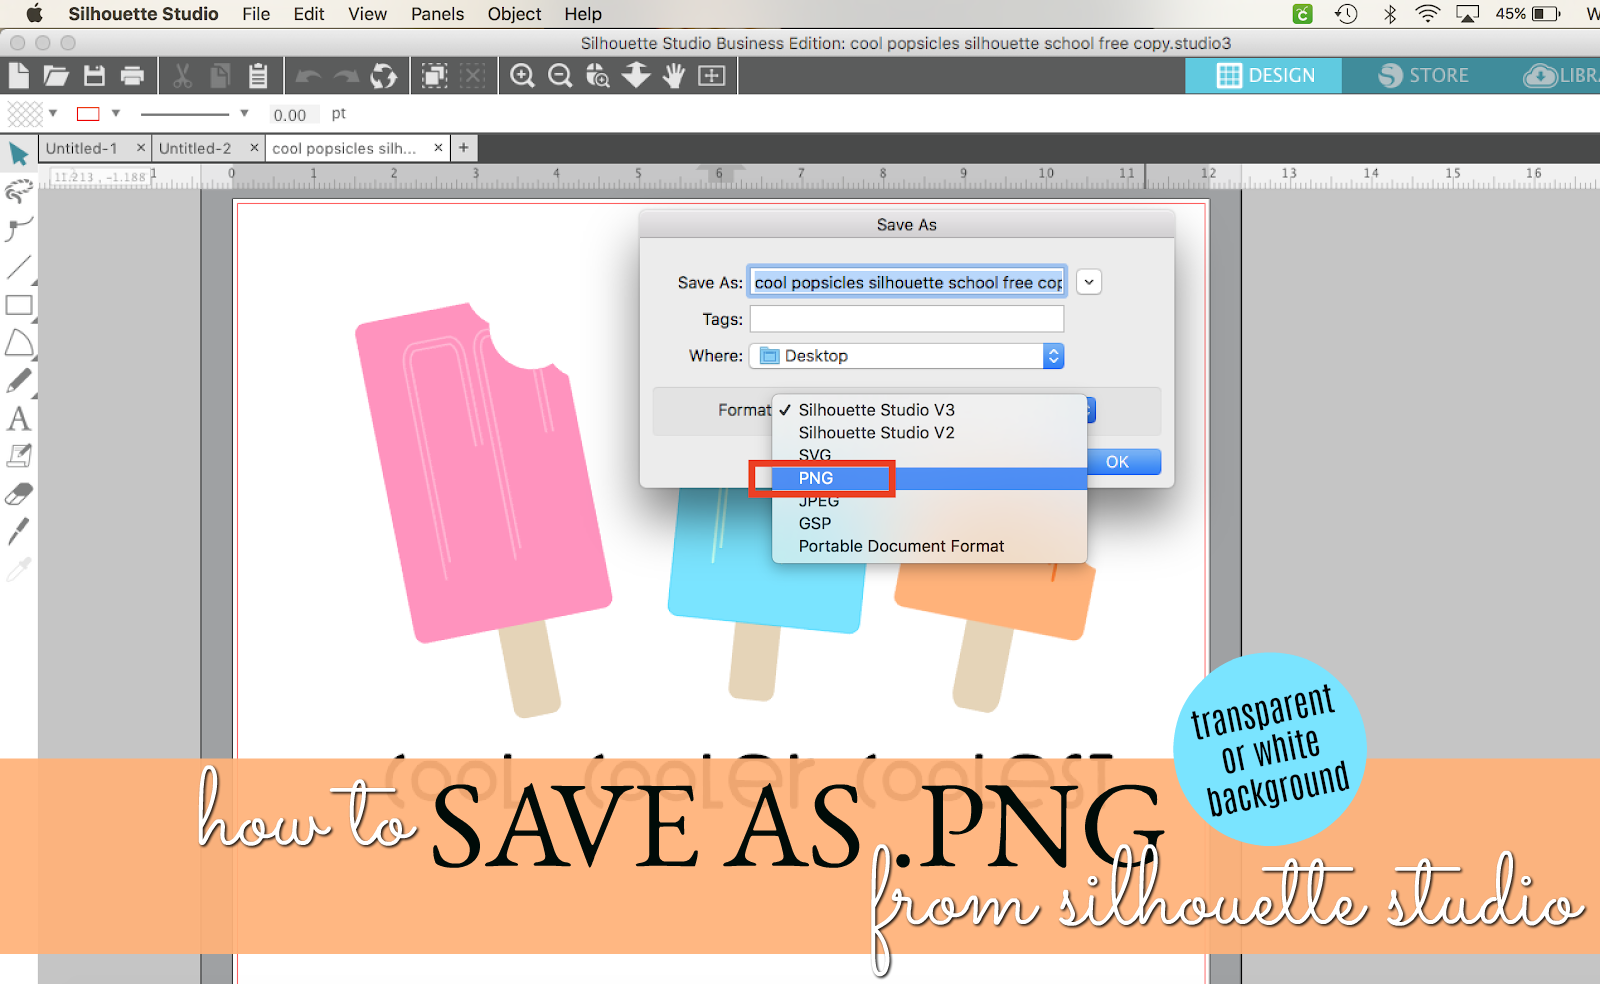 How to Save as PNG from Silhouette Studio (V4.2 Series.